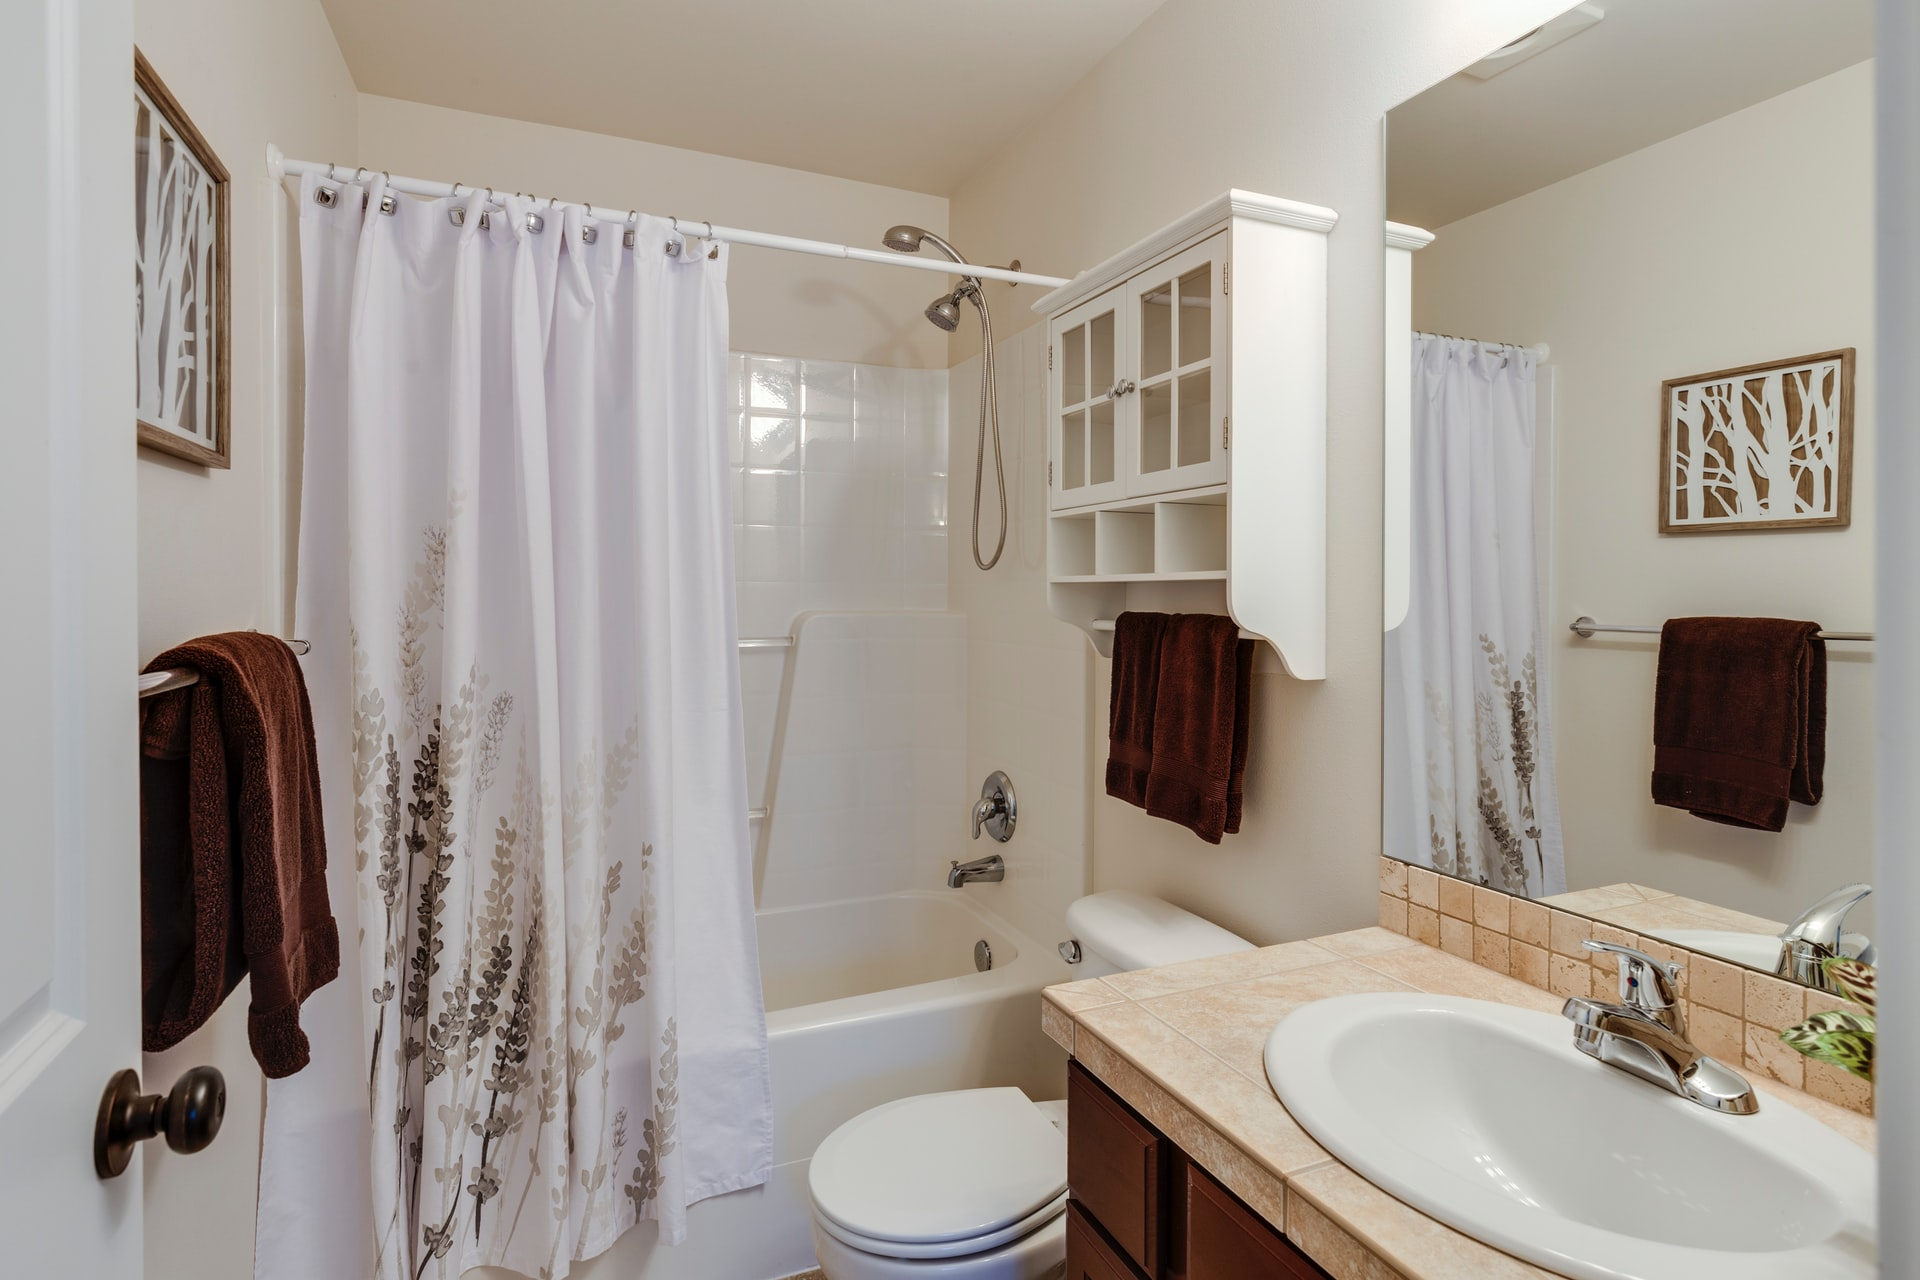 image - How to Make Your Old Springfield Bathroom Look Brand New